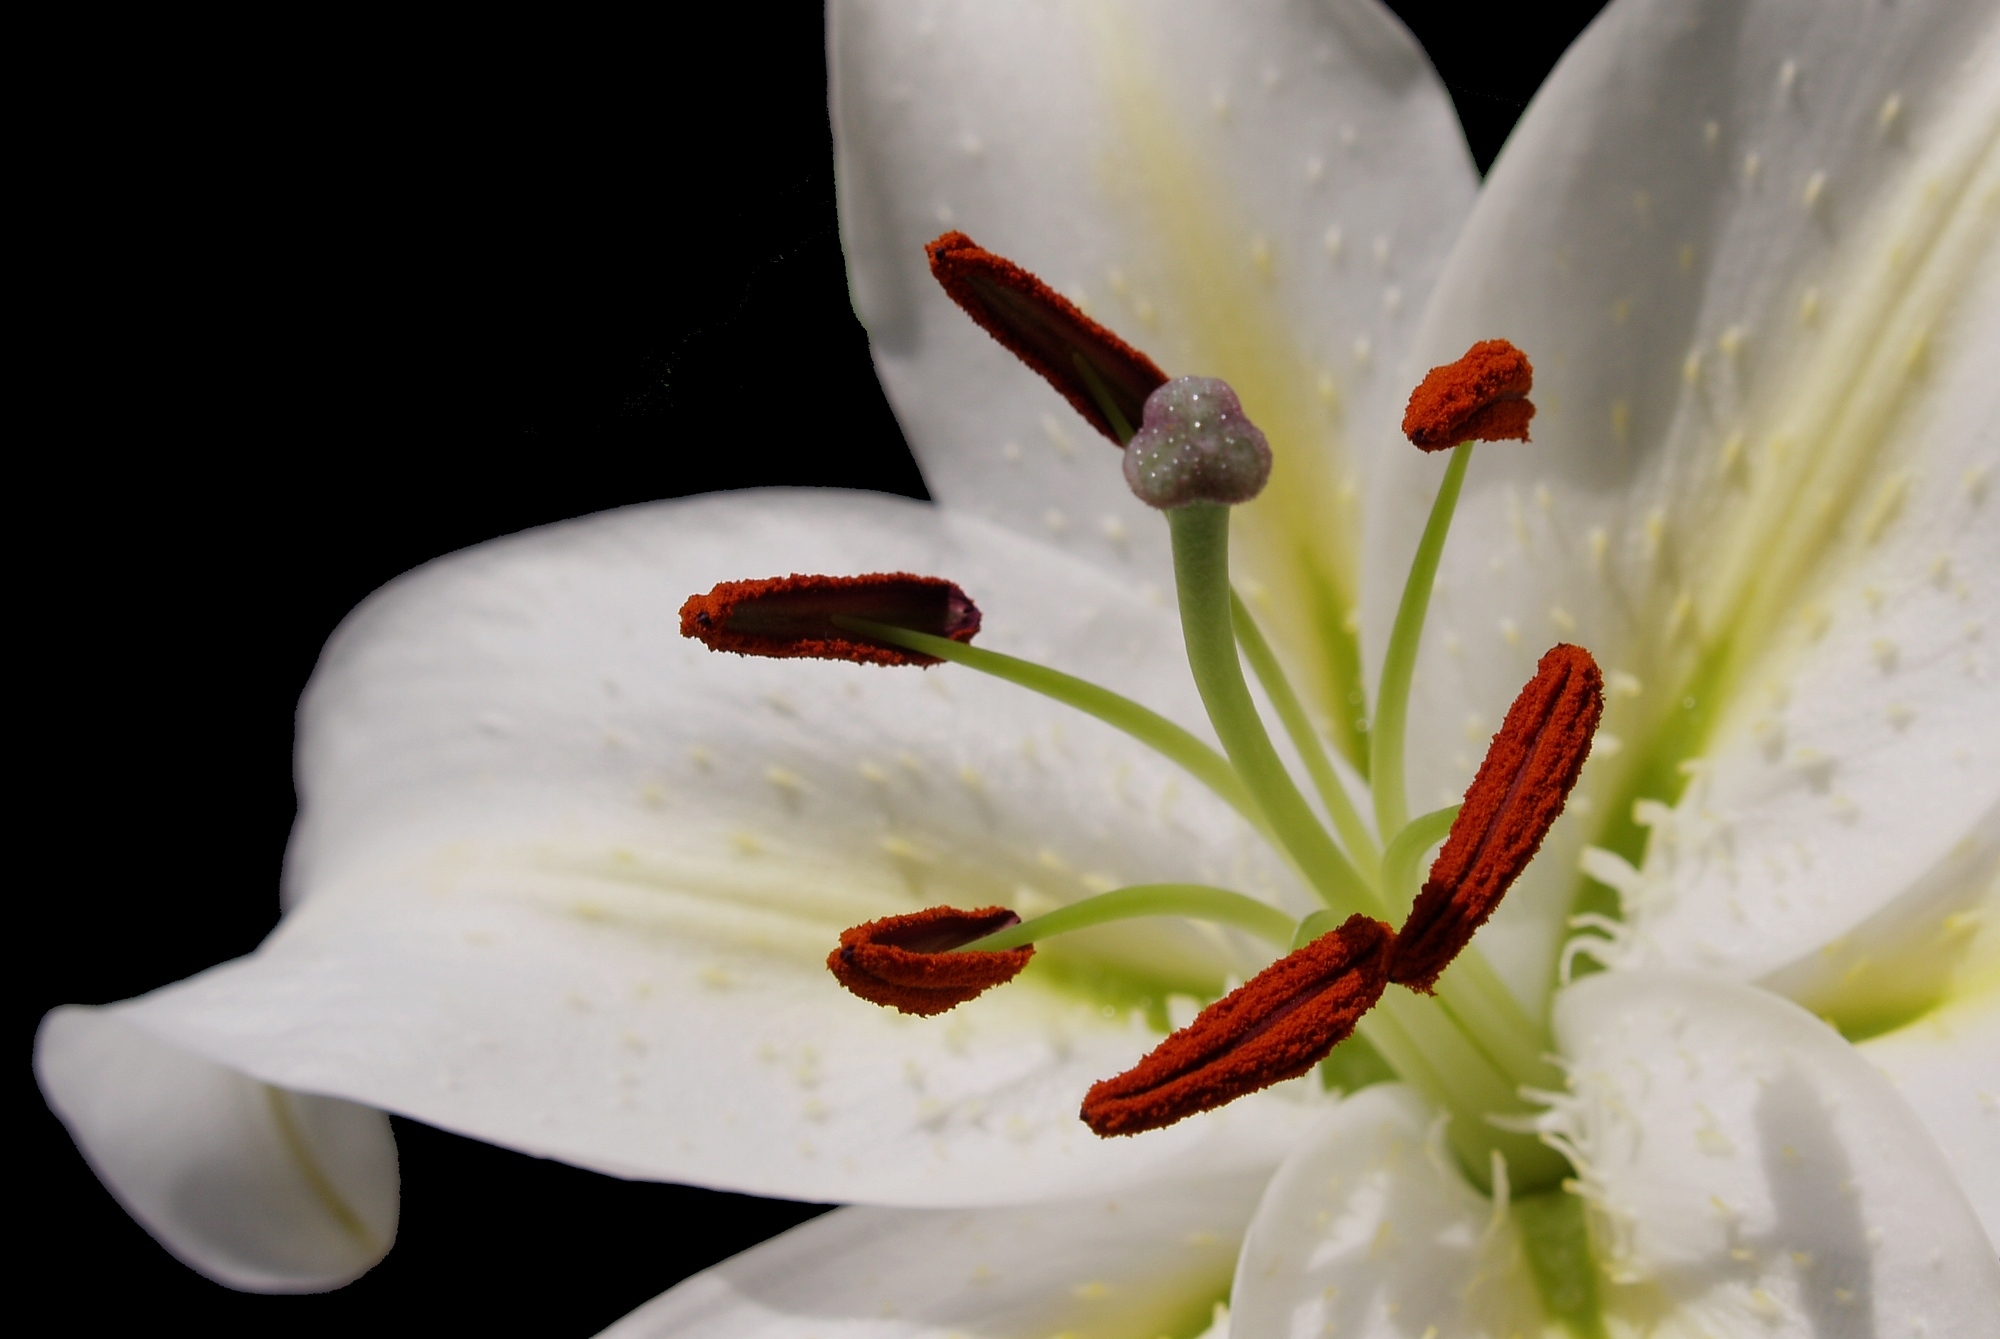 About the beautiful Casa Blanca Lily